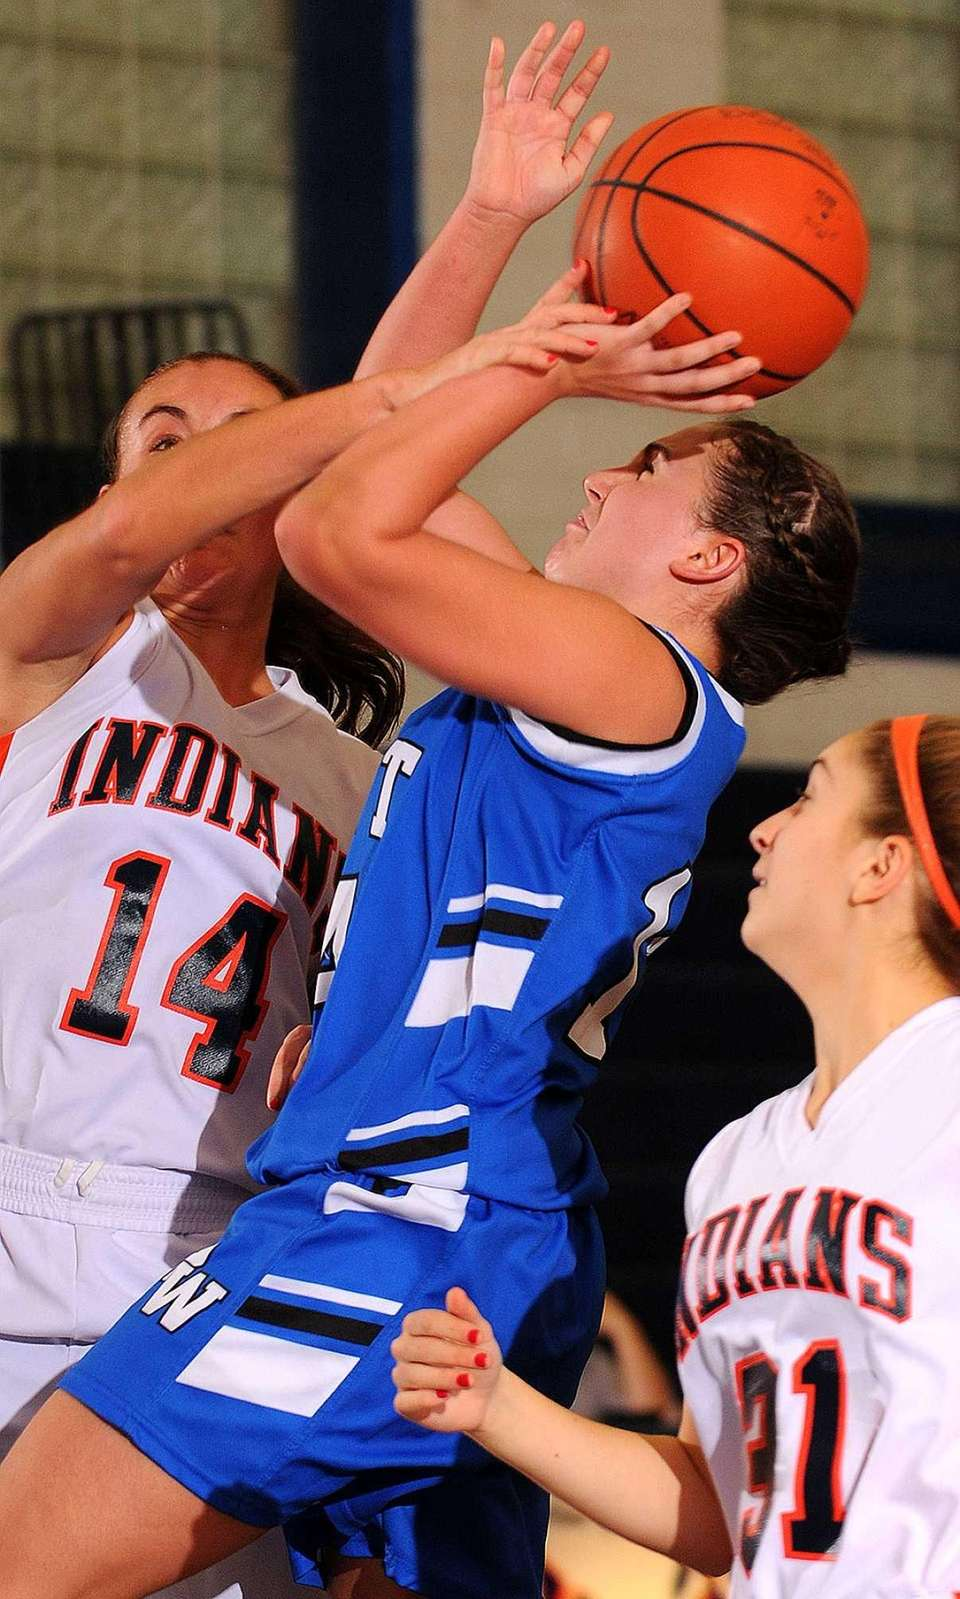 Port Washington's Megan Murphy draws a foul on